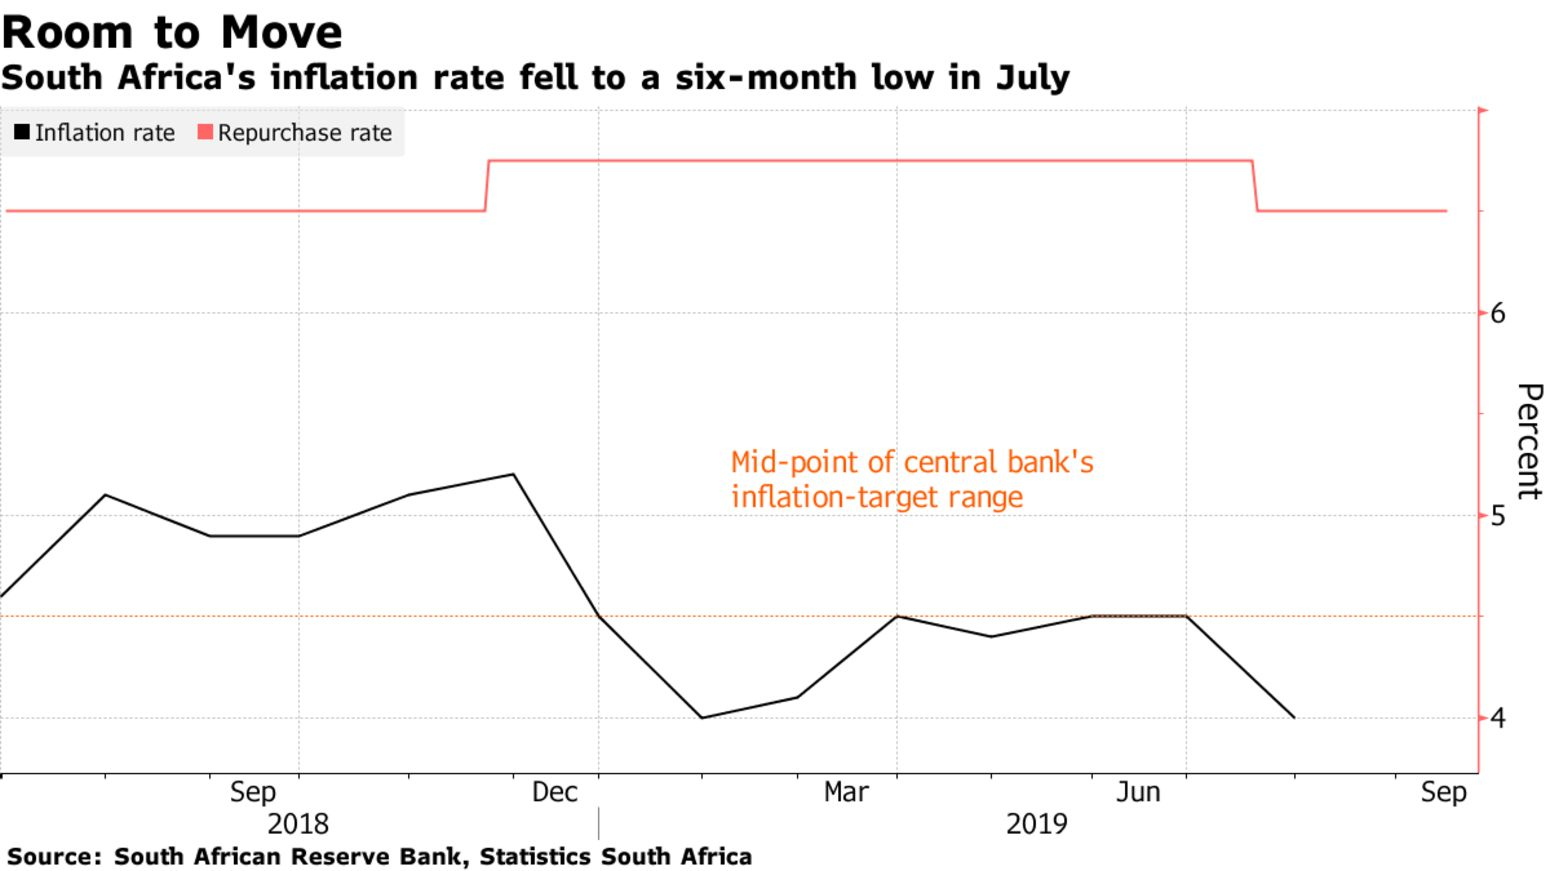 South Africa's inflation rate fell to a six-month low in July